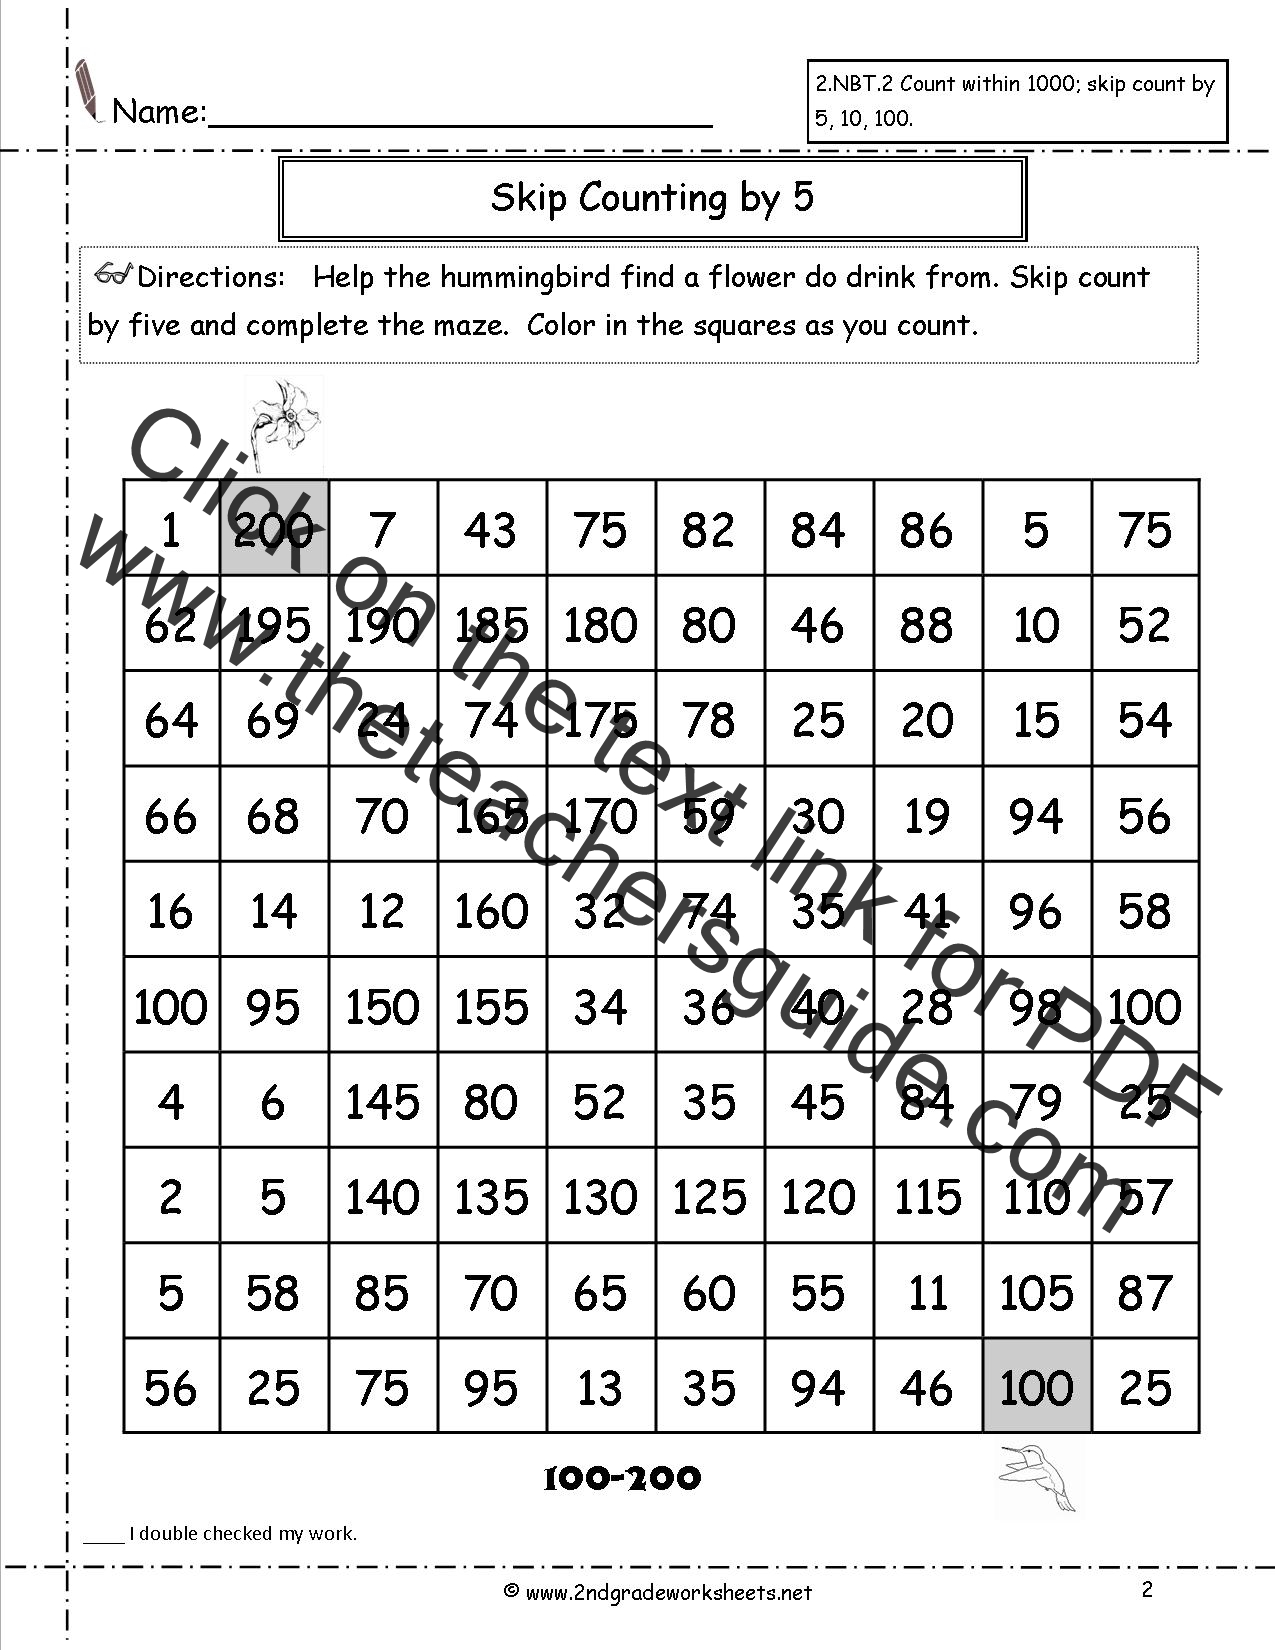 Worksheets Free Skip Counting Worksheets free skip counting worksheets count by 5 maze